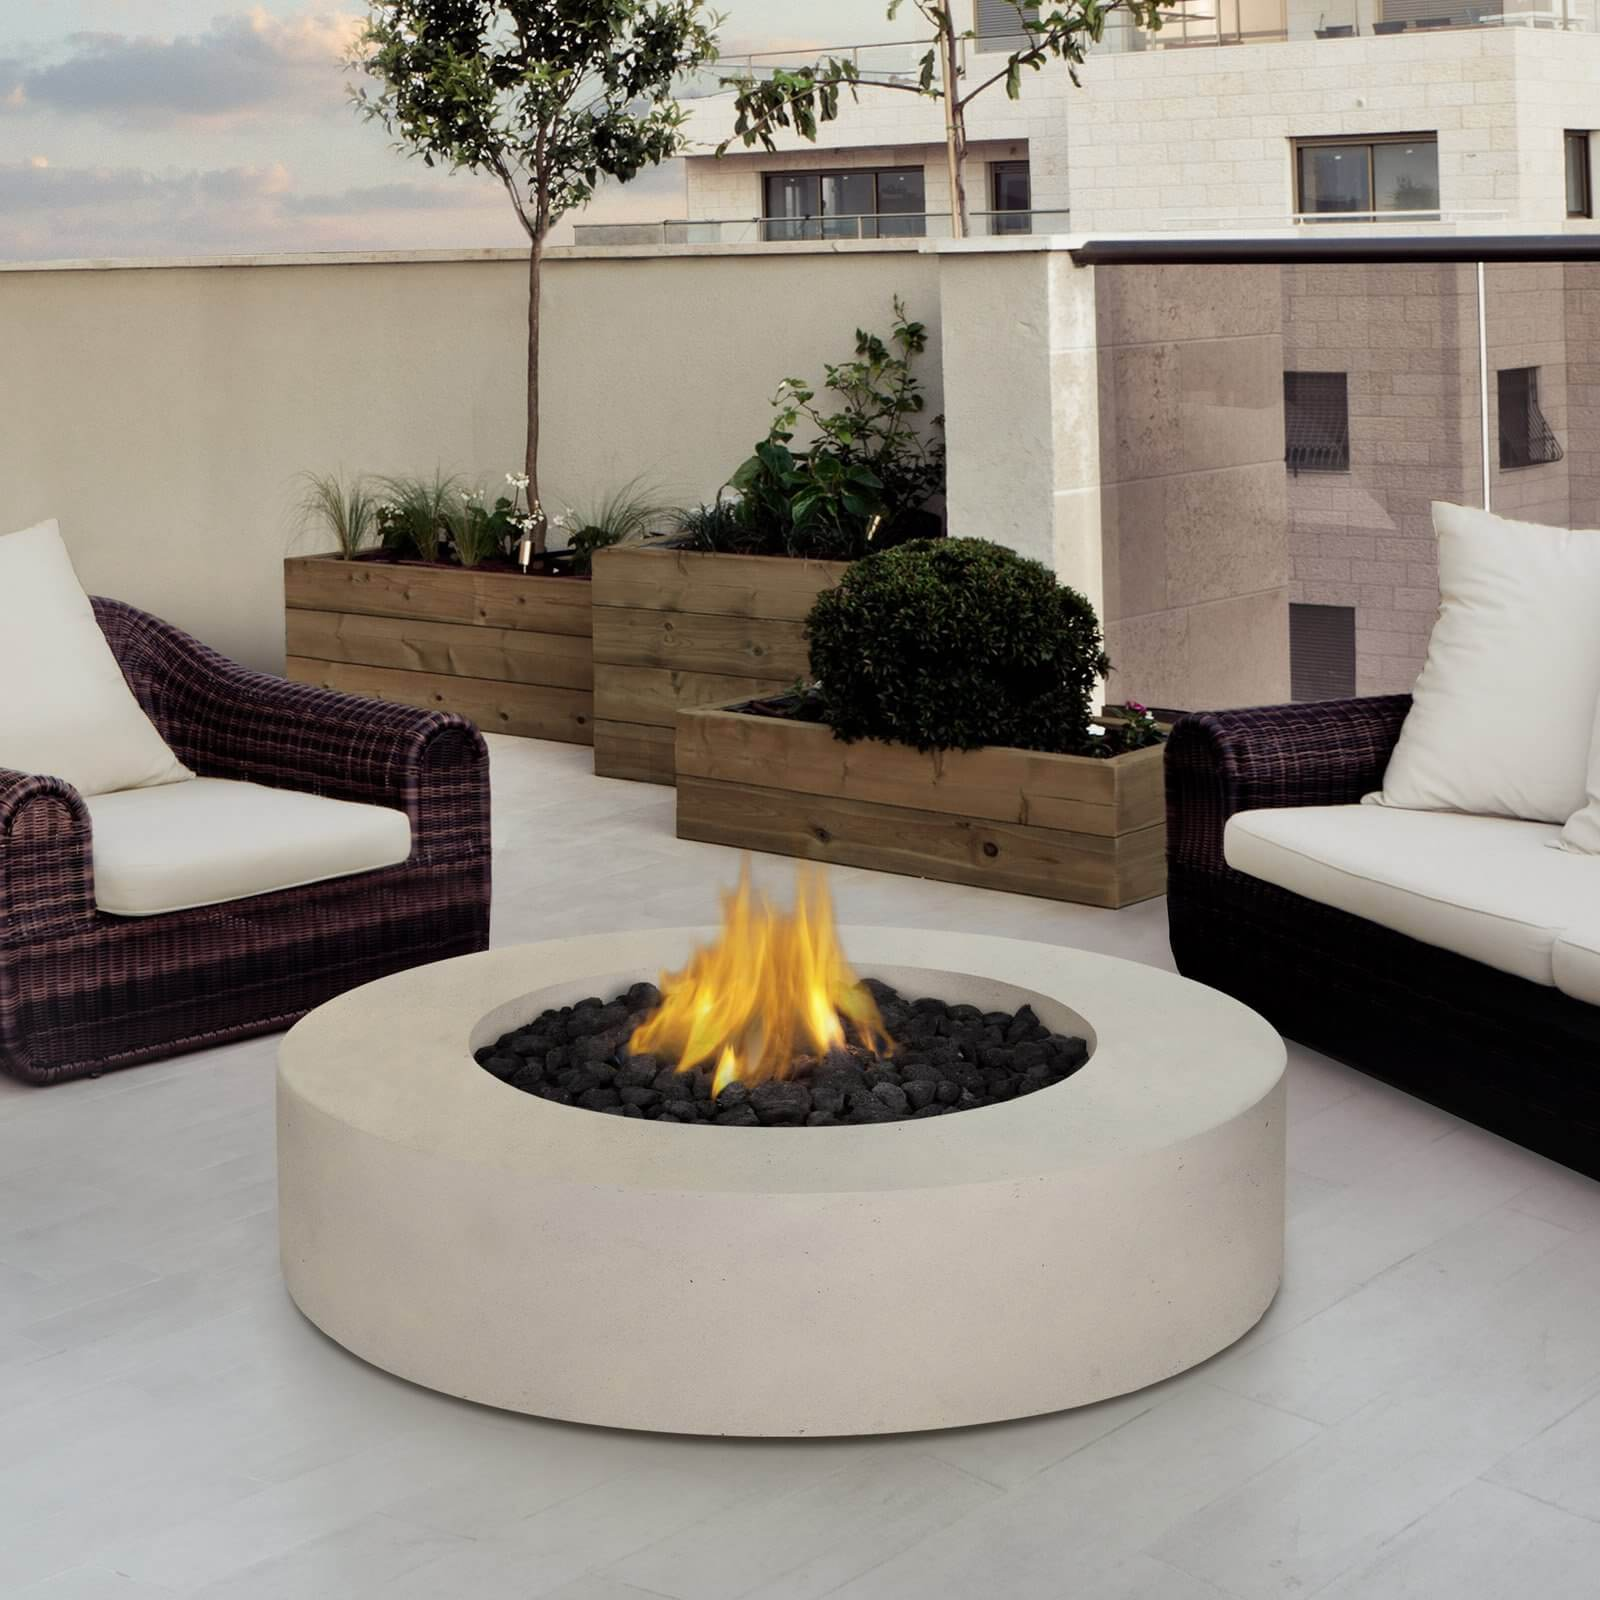 Want a simple and elegant fire pit table? Then why not get this white marble/granite one. It comes with its own lava stones and you can adjust its settings easily.